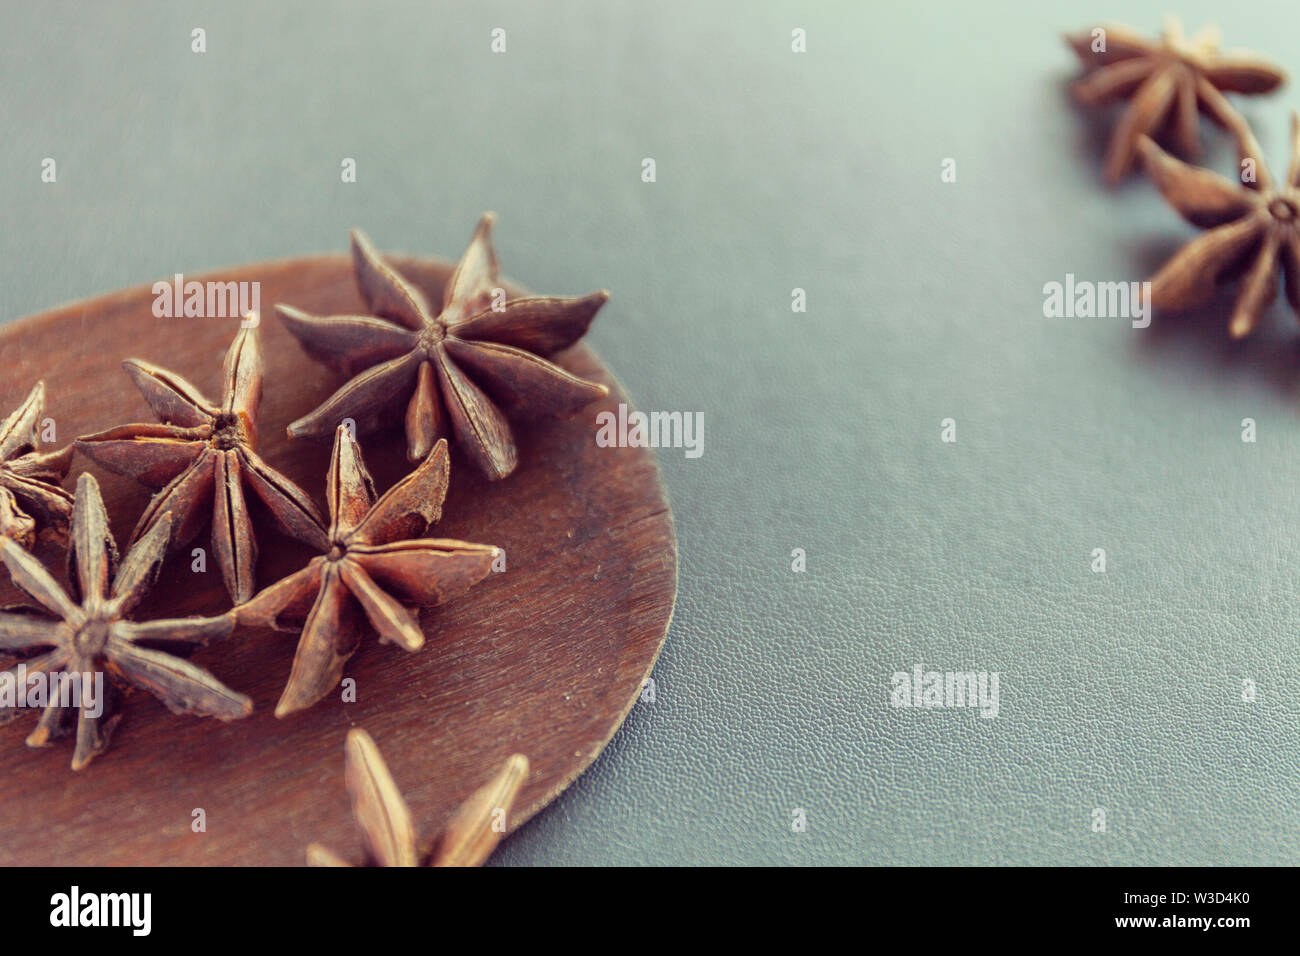 Dry Star anise on a brown wooden spatula. Natural food spices and seasonings. Tasty eating. Close-up. Stock Photo